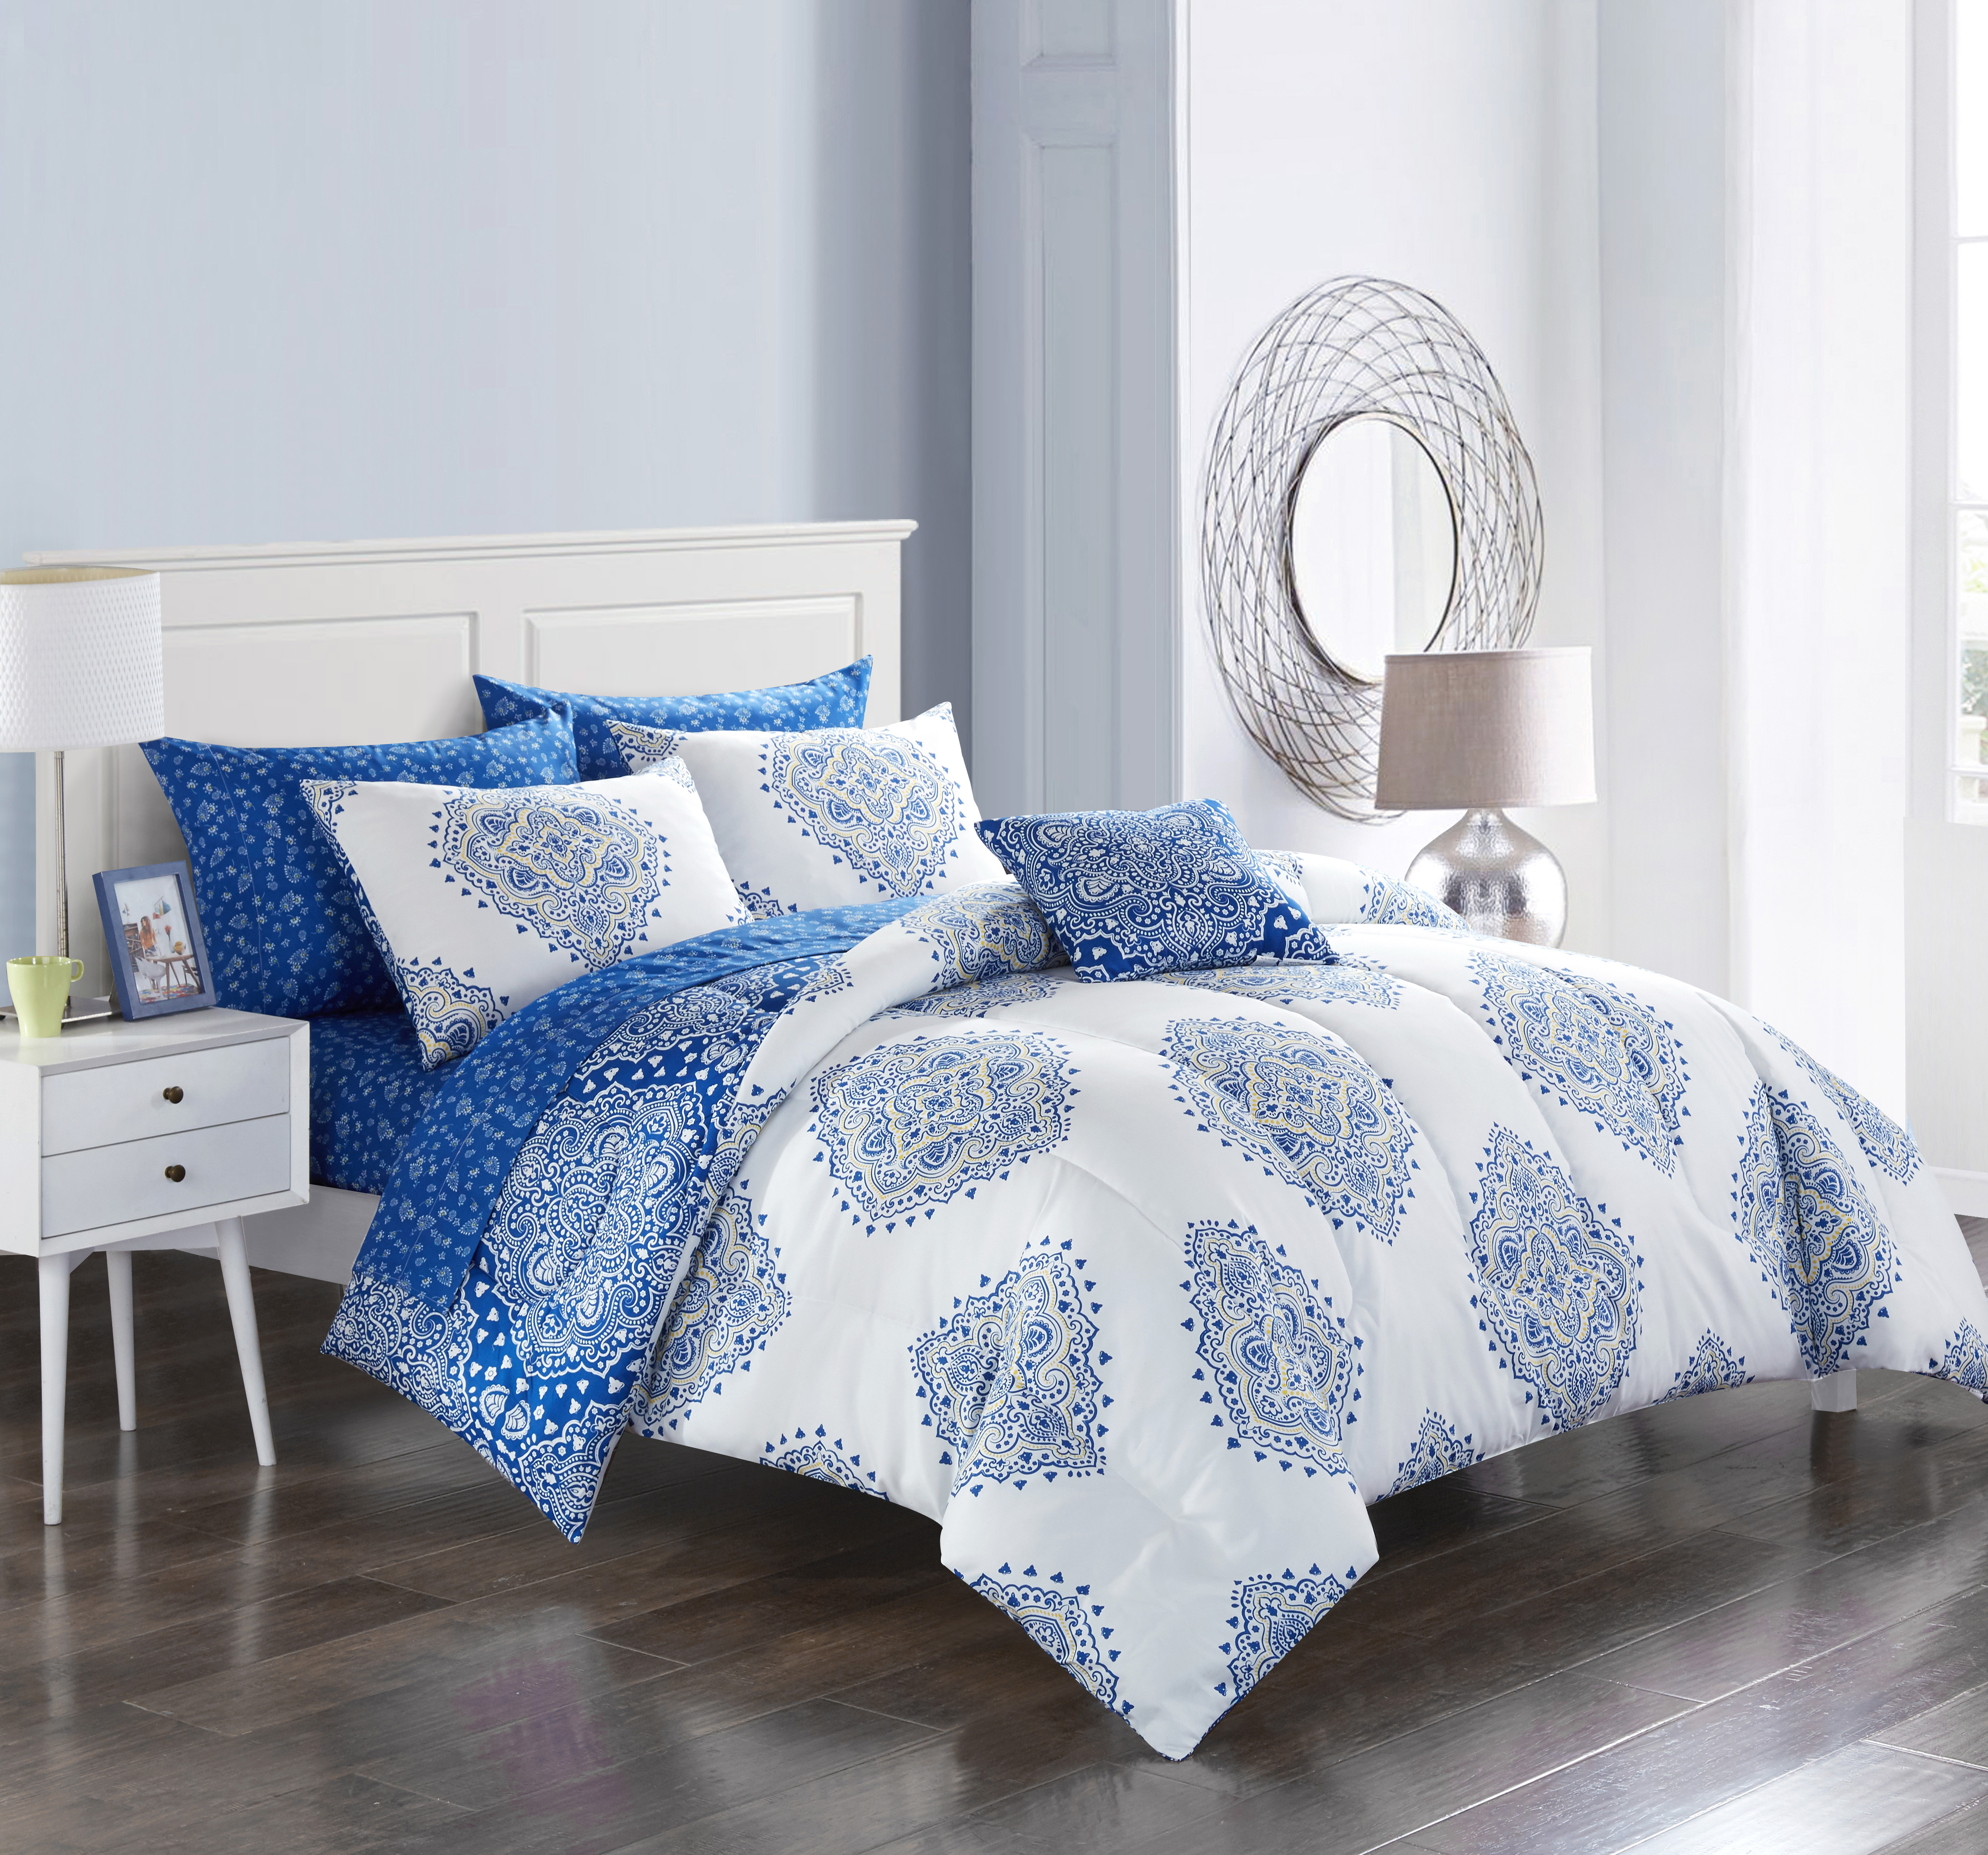 Bedding & Bedding Sets Walmart